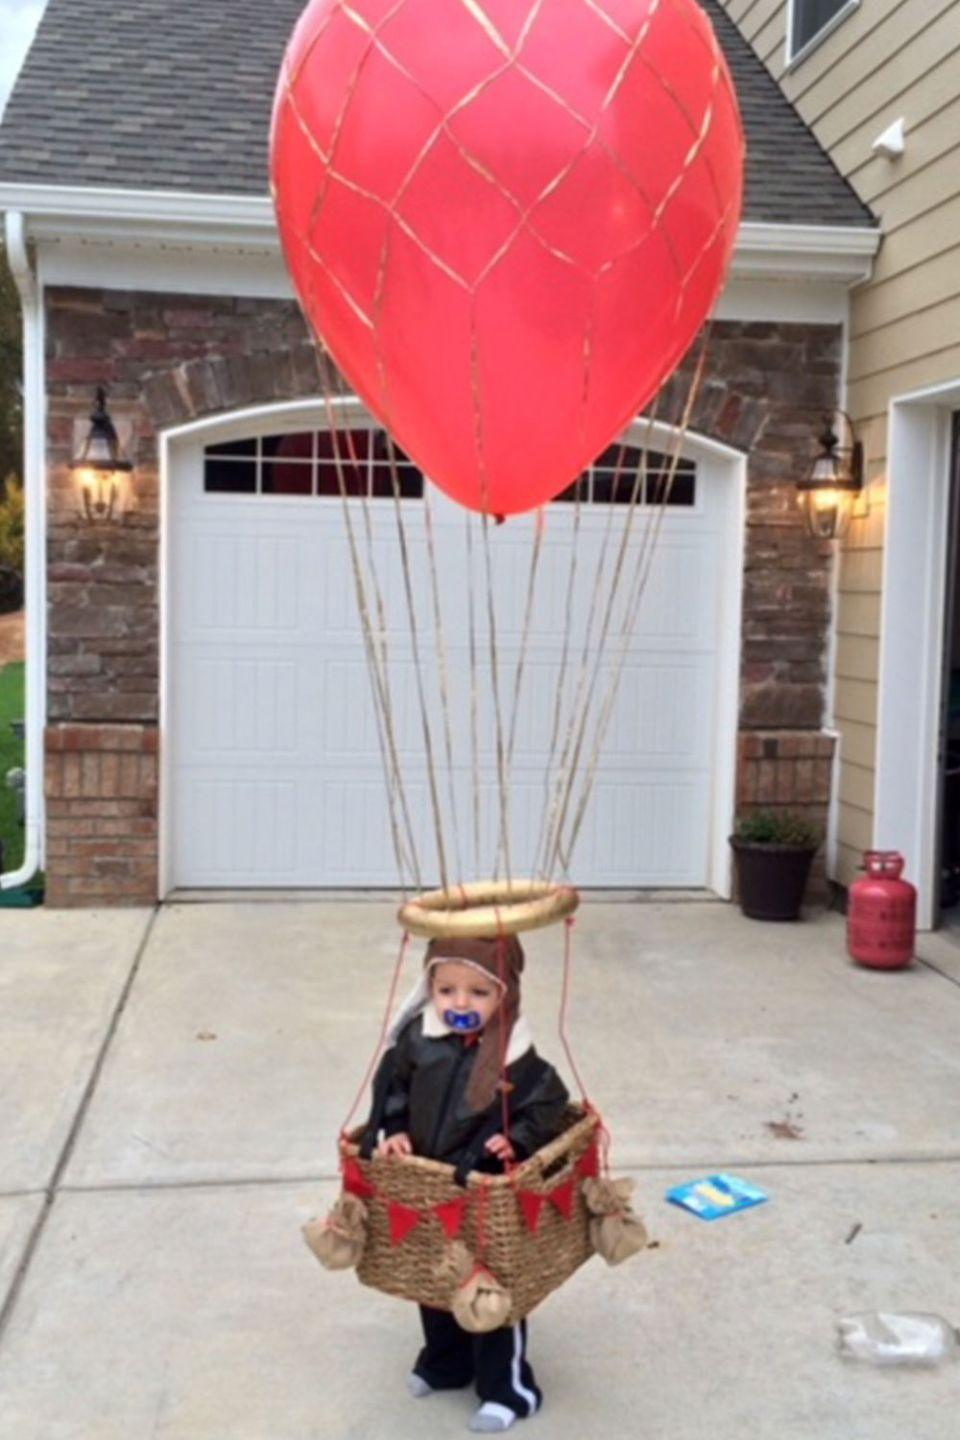 <p>Don't worry, the hefty bags of candy kept this hot air balloonist planted firmly on the ground.</p>